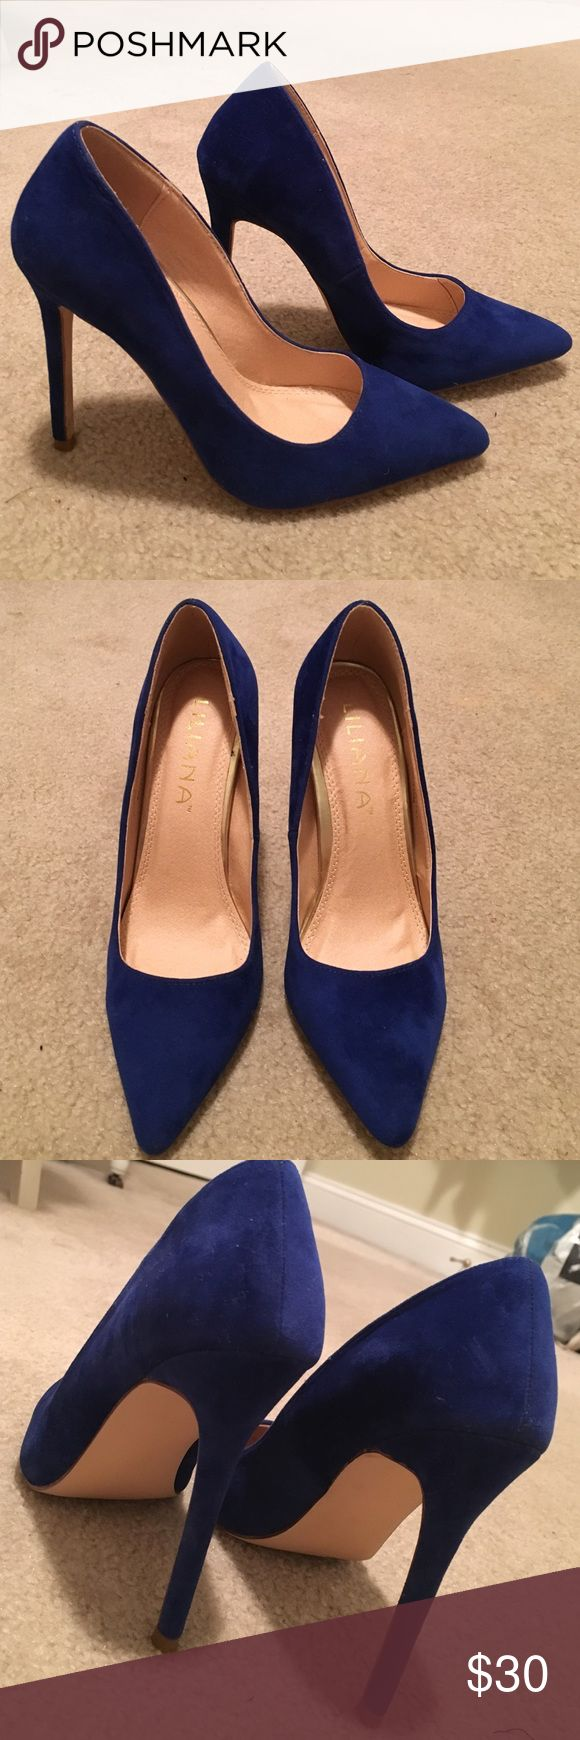 Liliana royal blue suede pumps Never worn! Super cute blue suede pumps with a pointed toe! Liliana Shoes Heels